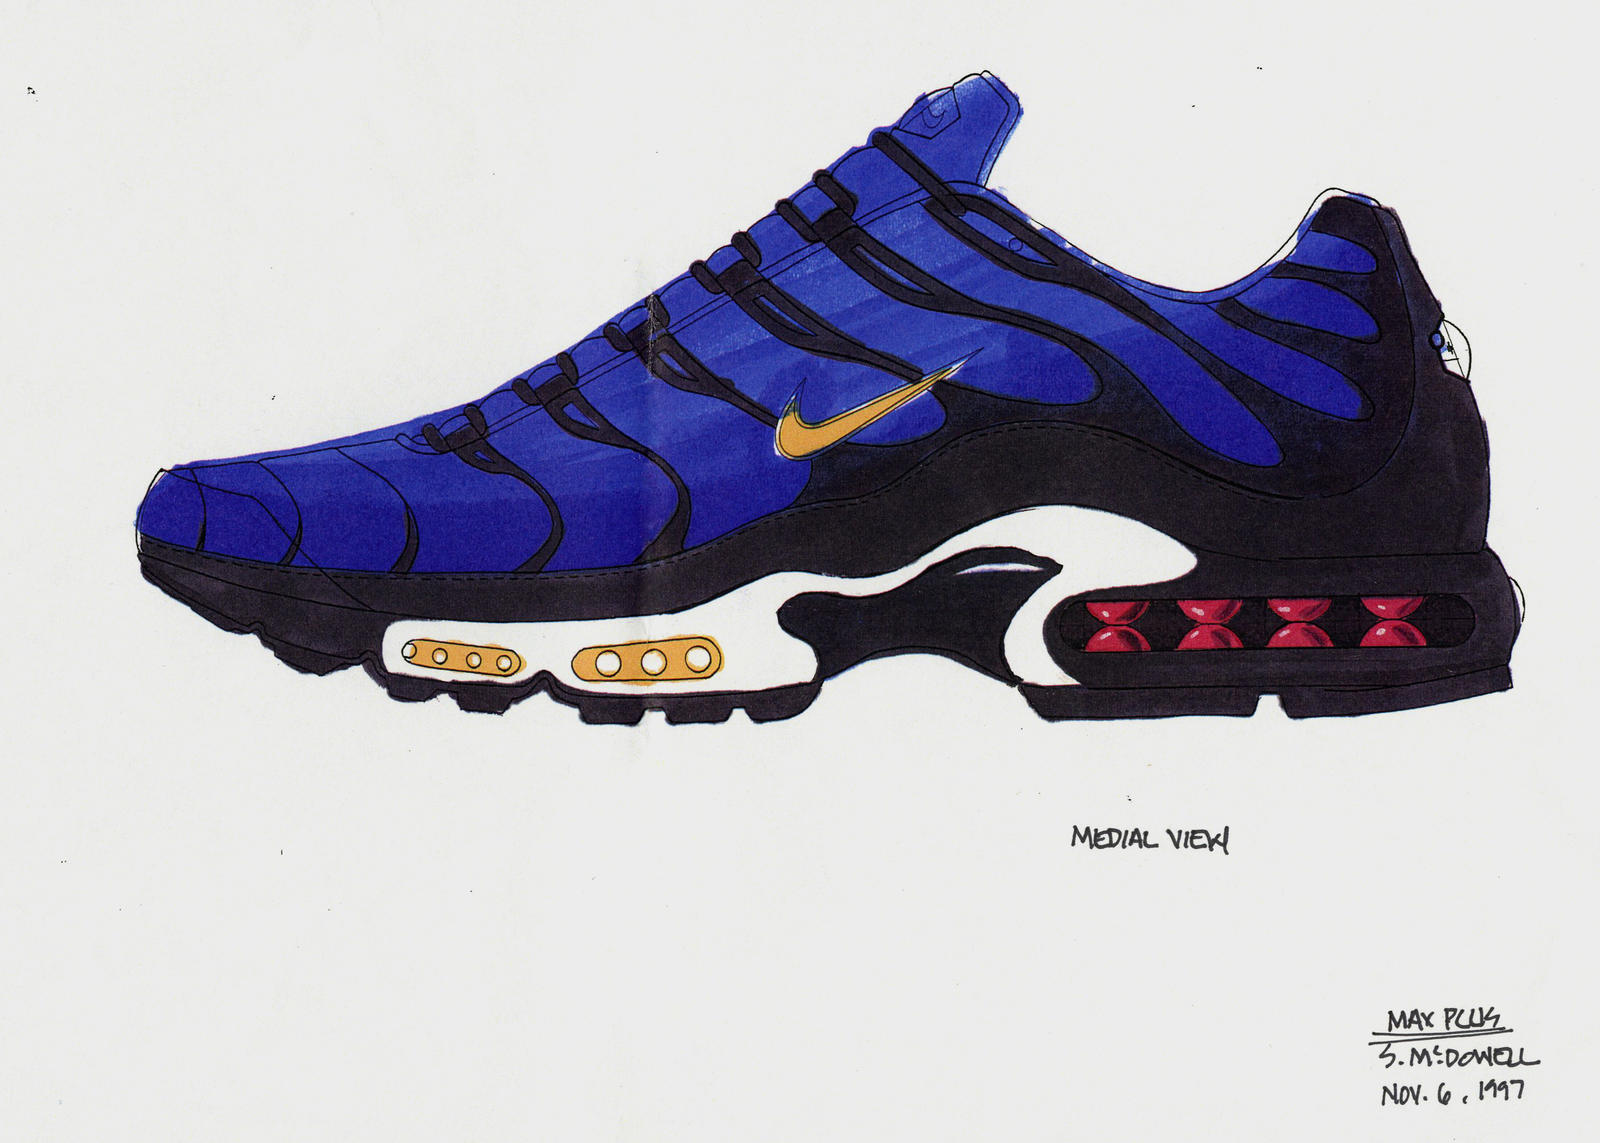 Nike Air Max Plus TN History - Nike News